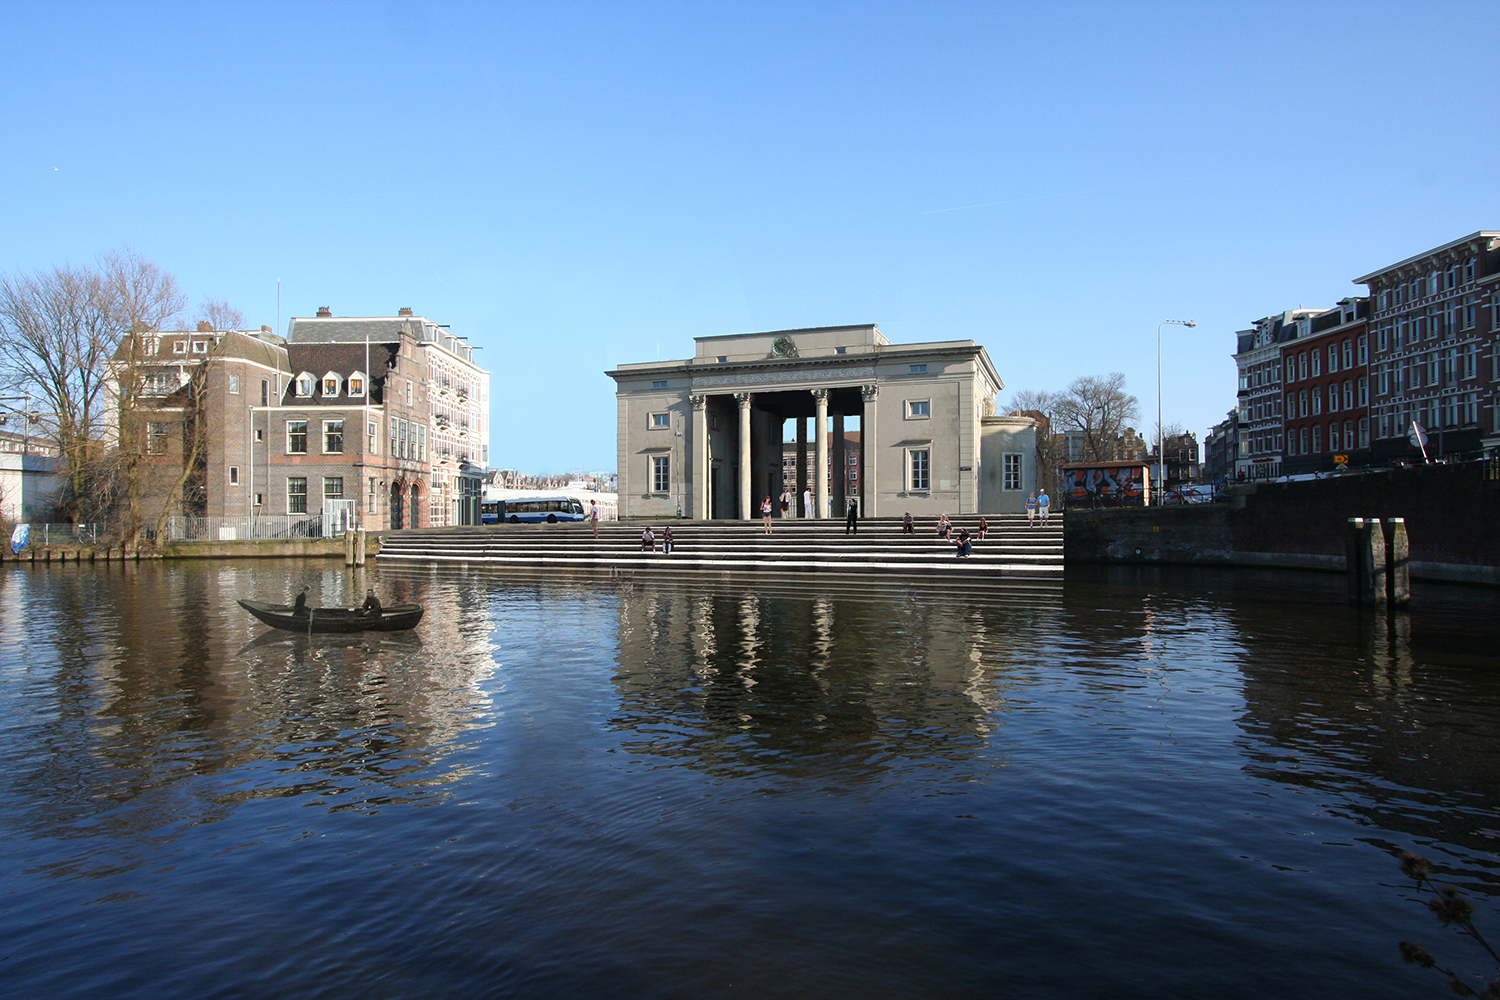 The Haarlemmerpoort is het starting point of the Trekvaart and will be demarkated as such by introducing large stairs towards the water at the backside of the building.